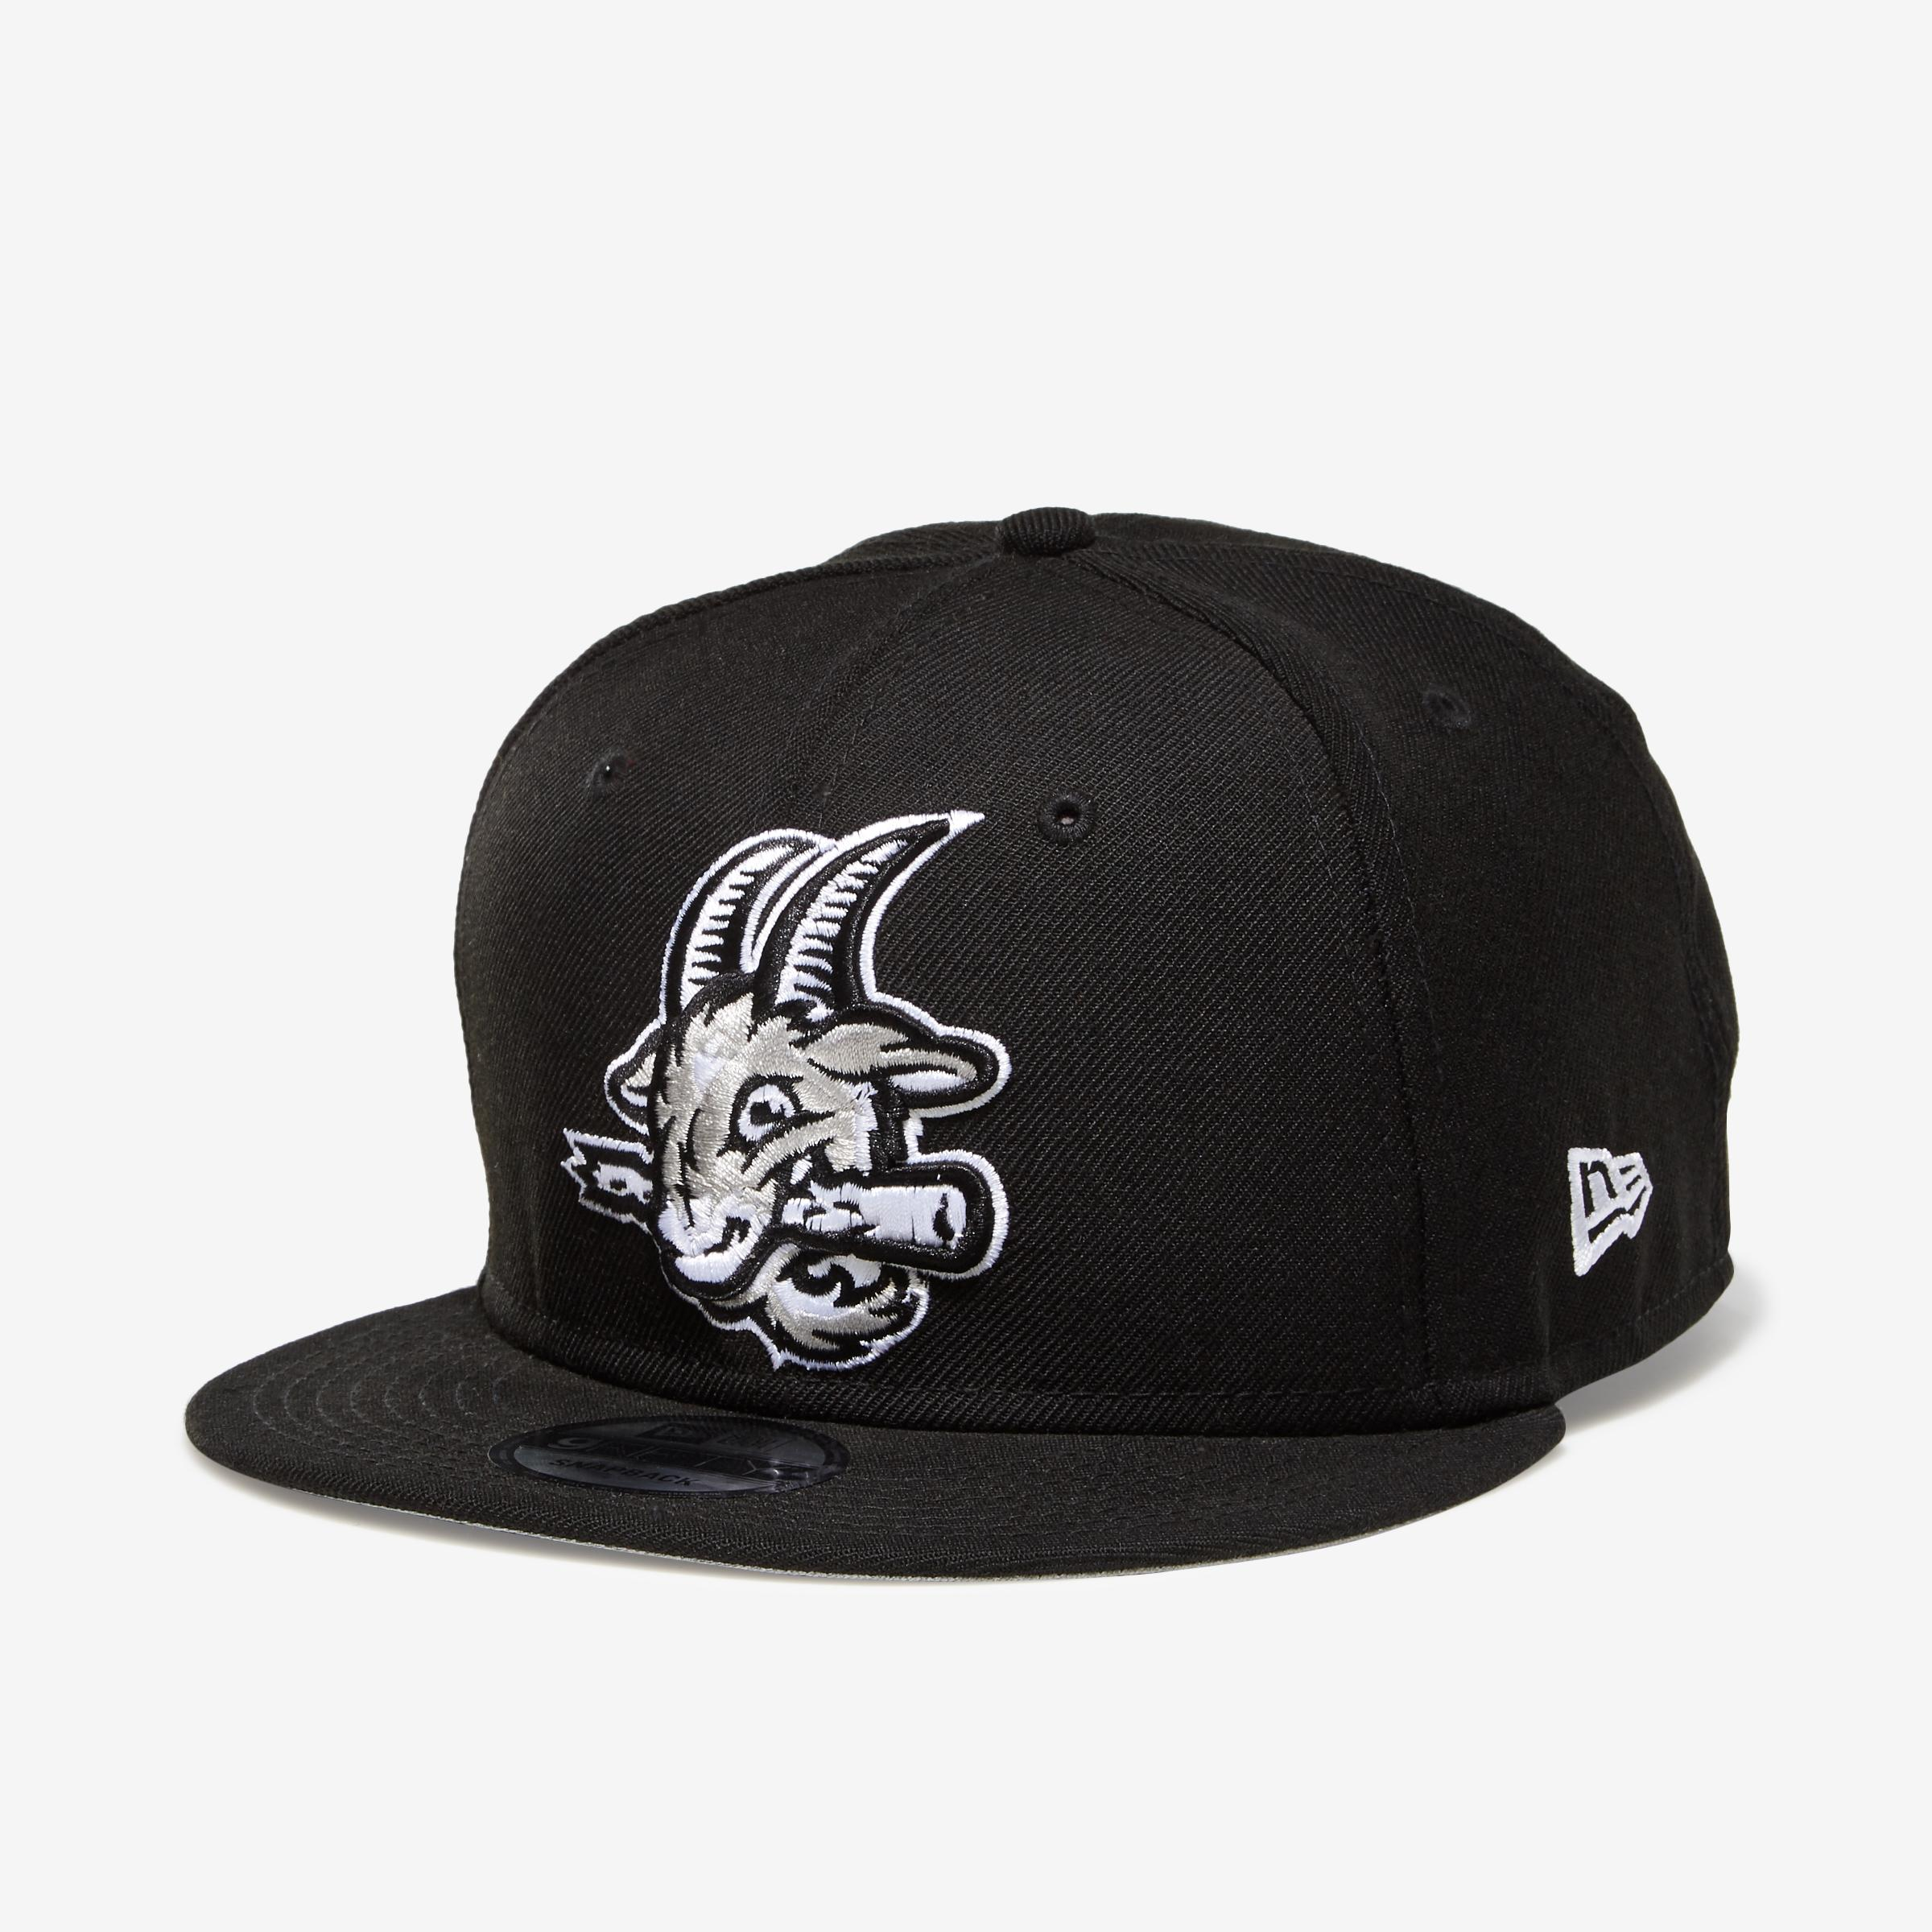 Hartford Yard Goats 9fifty Snapback